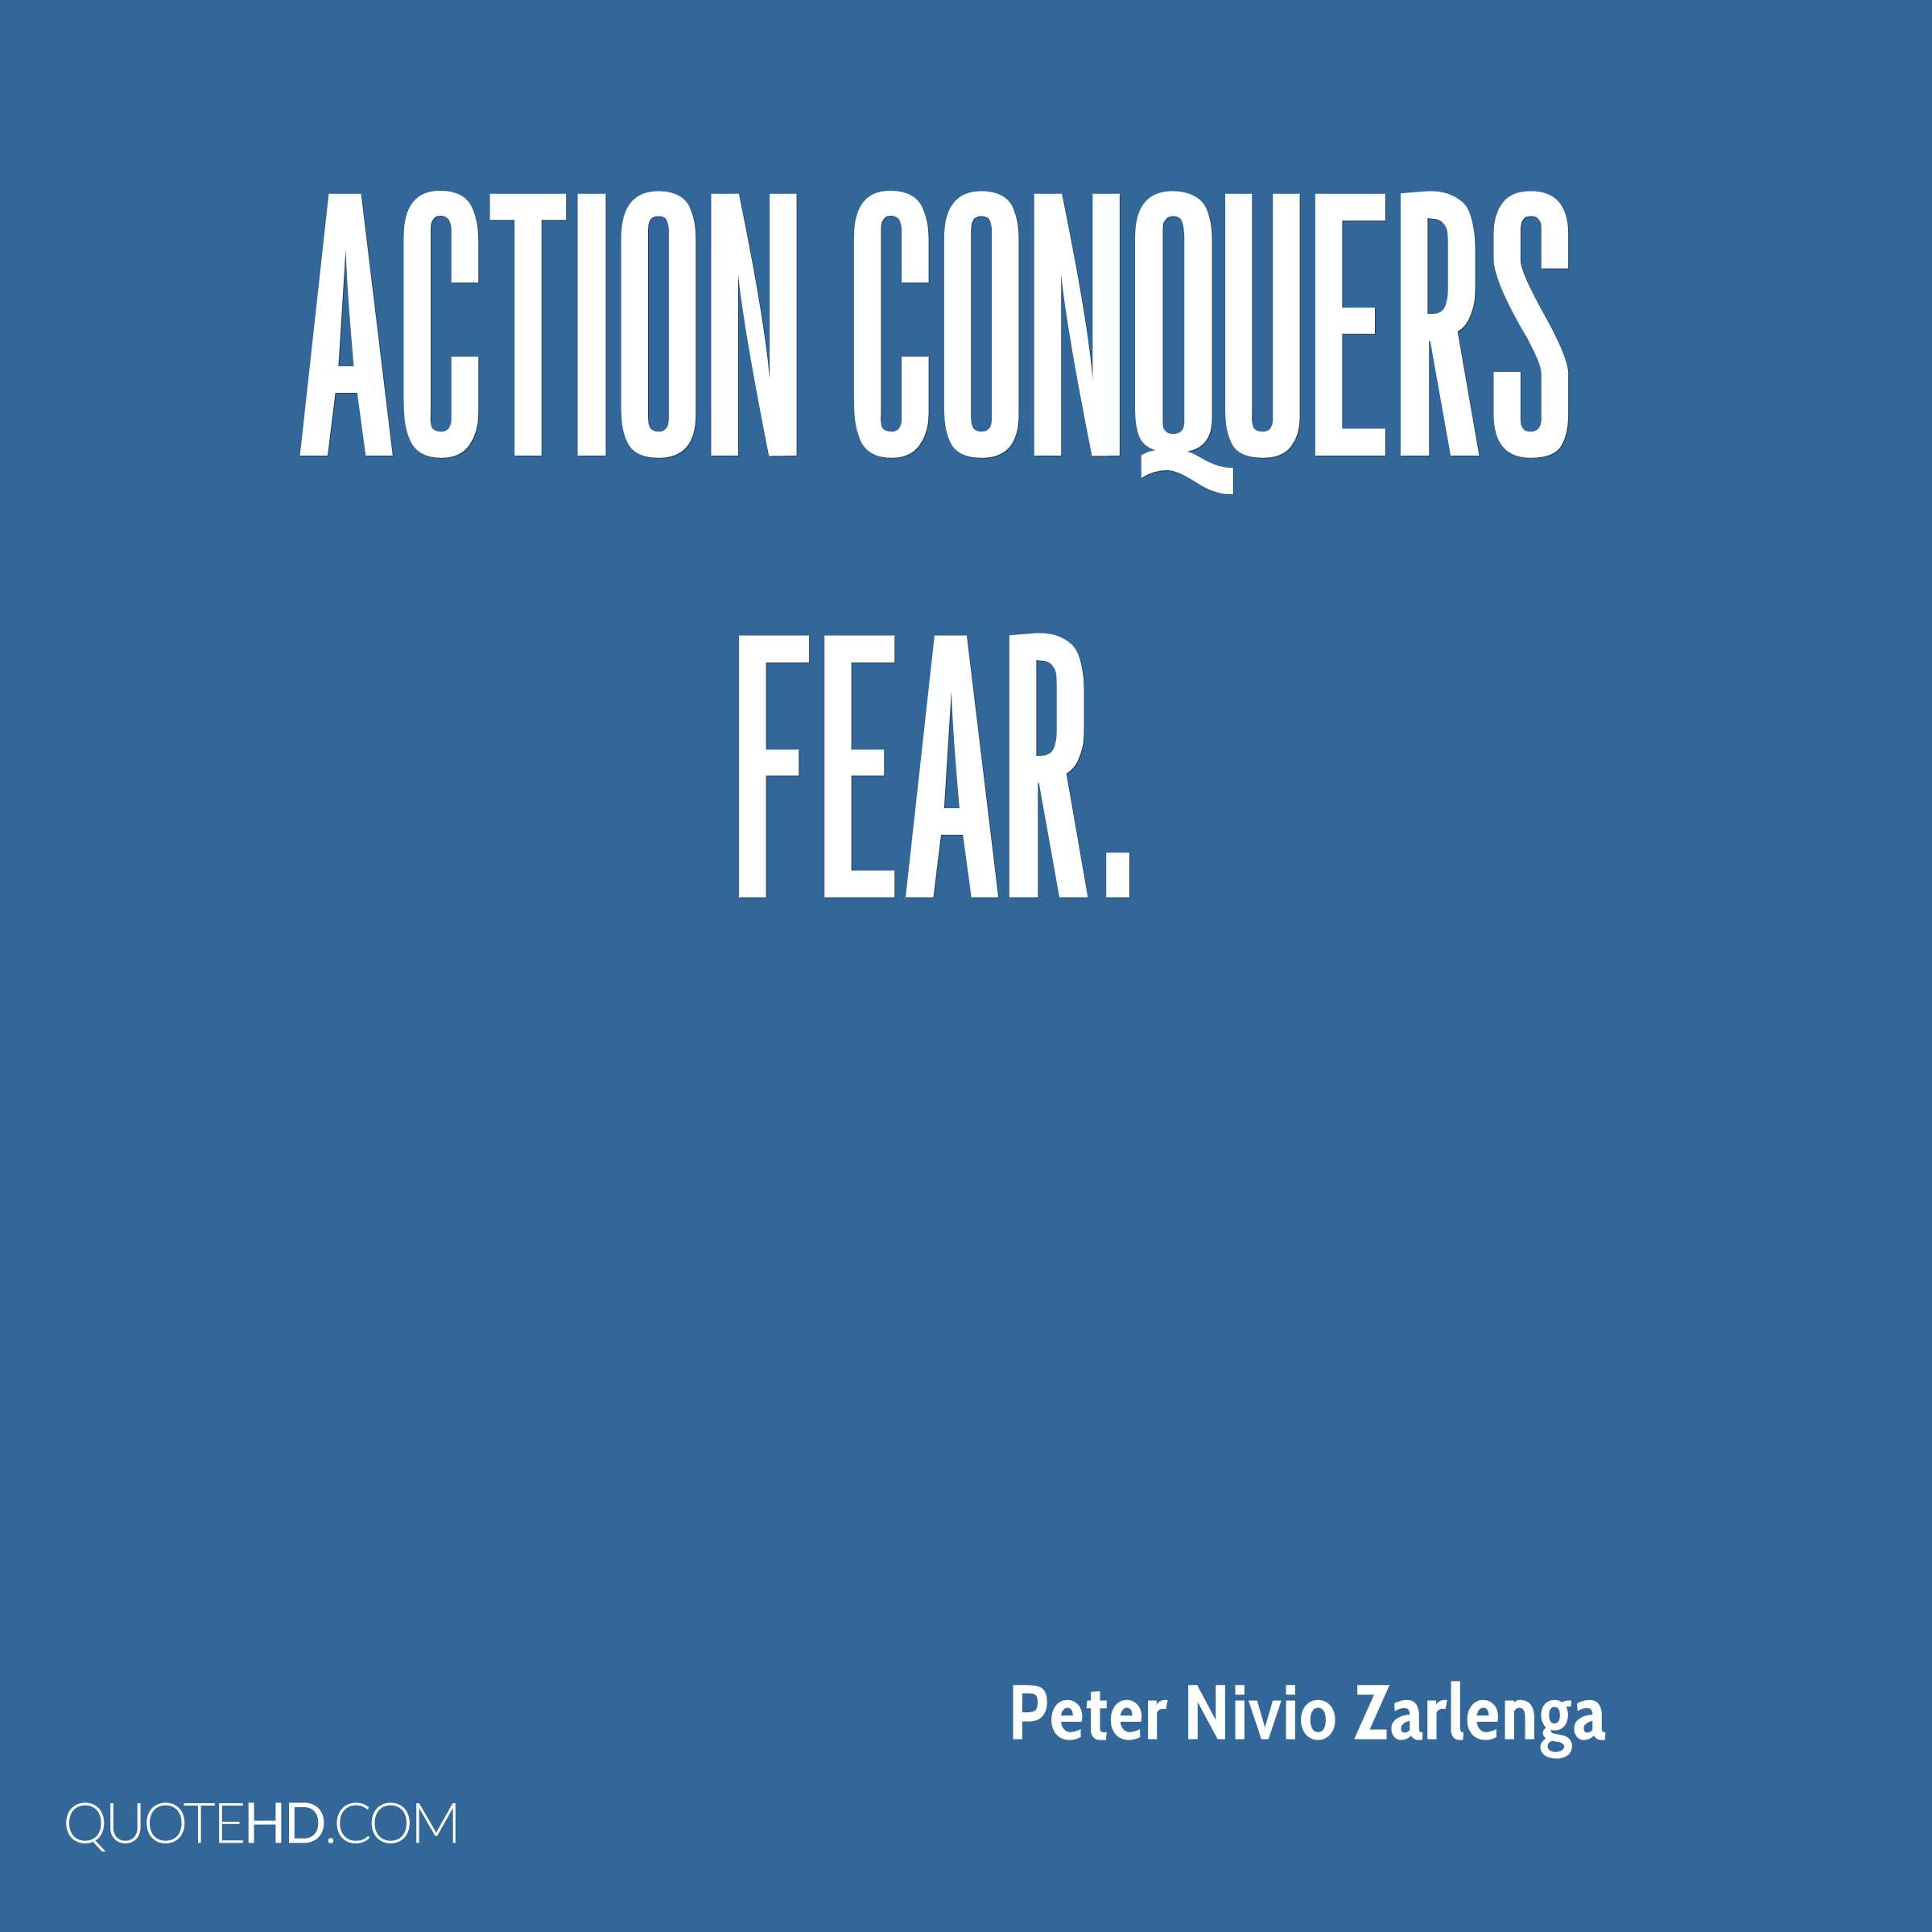 Action conquers fear.